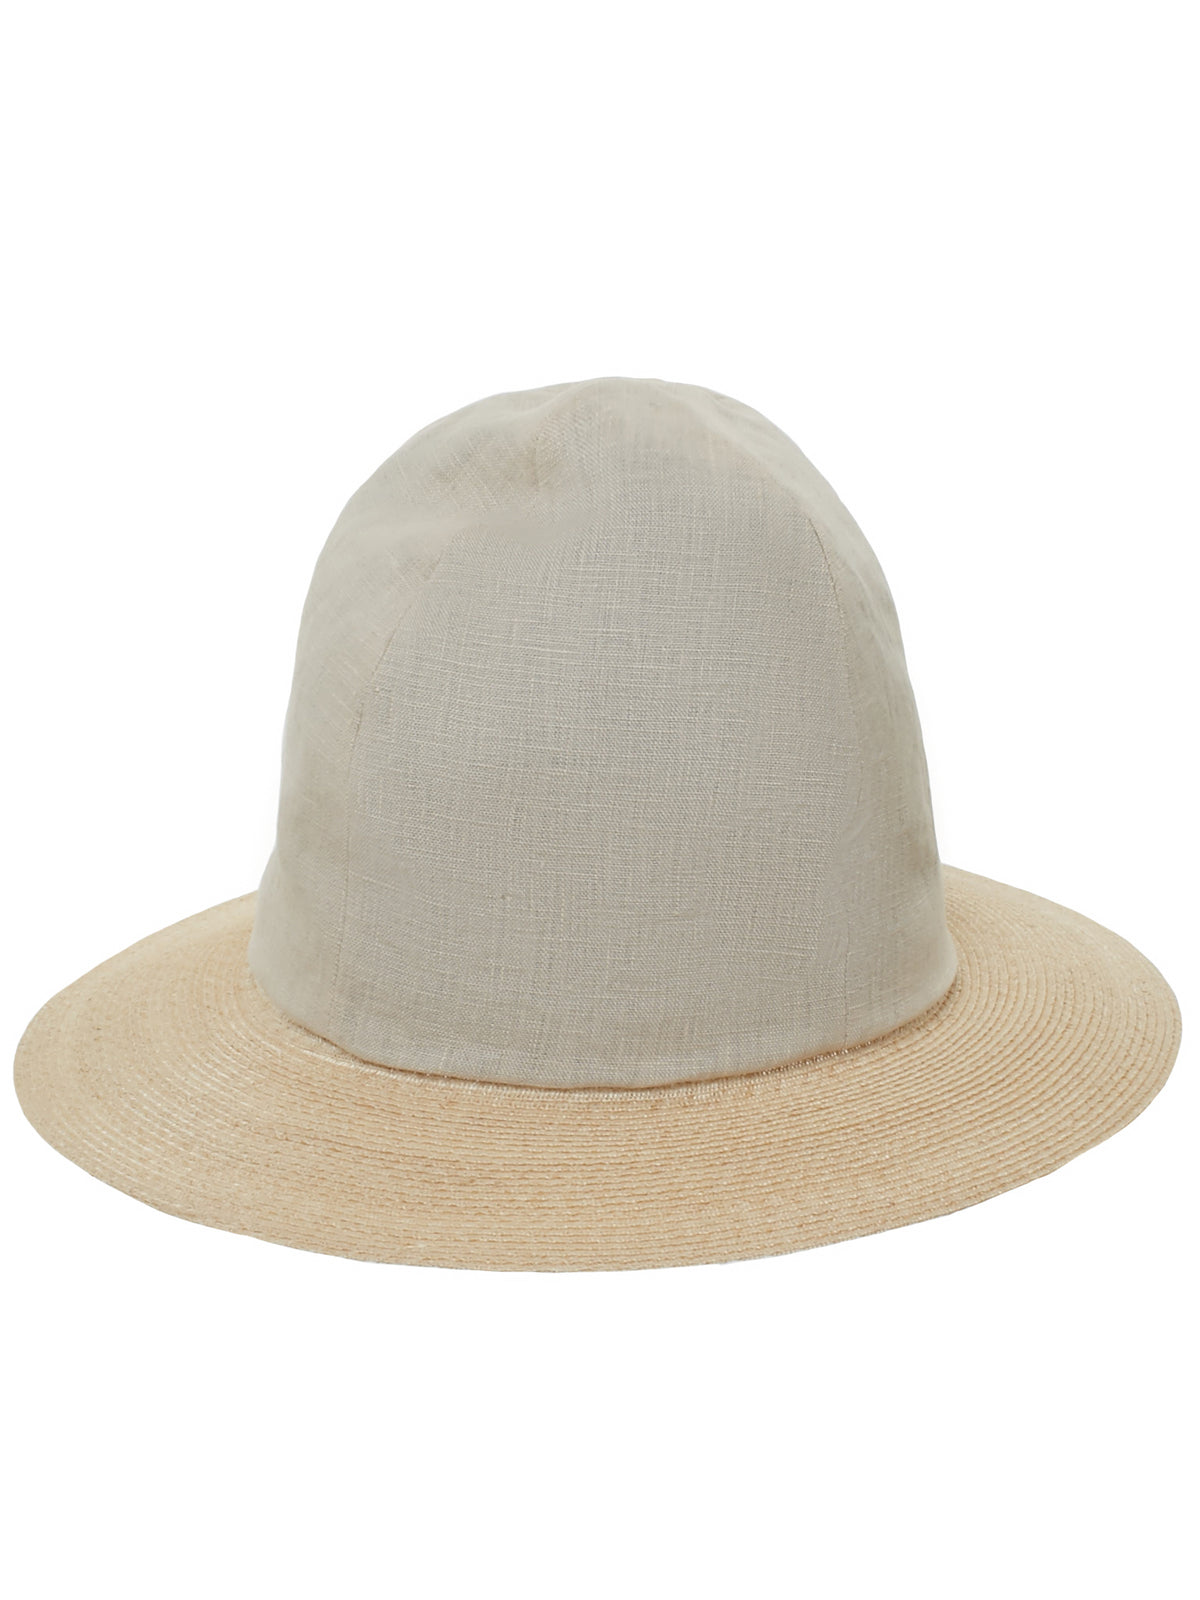 Straw Hat (NH-H01-360-BEIGE)